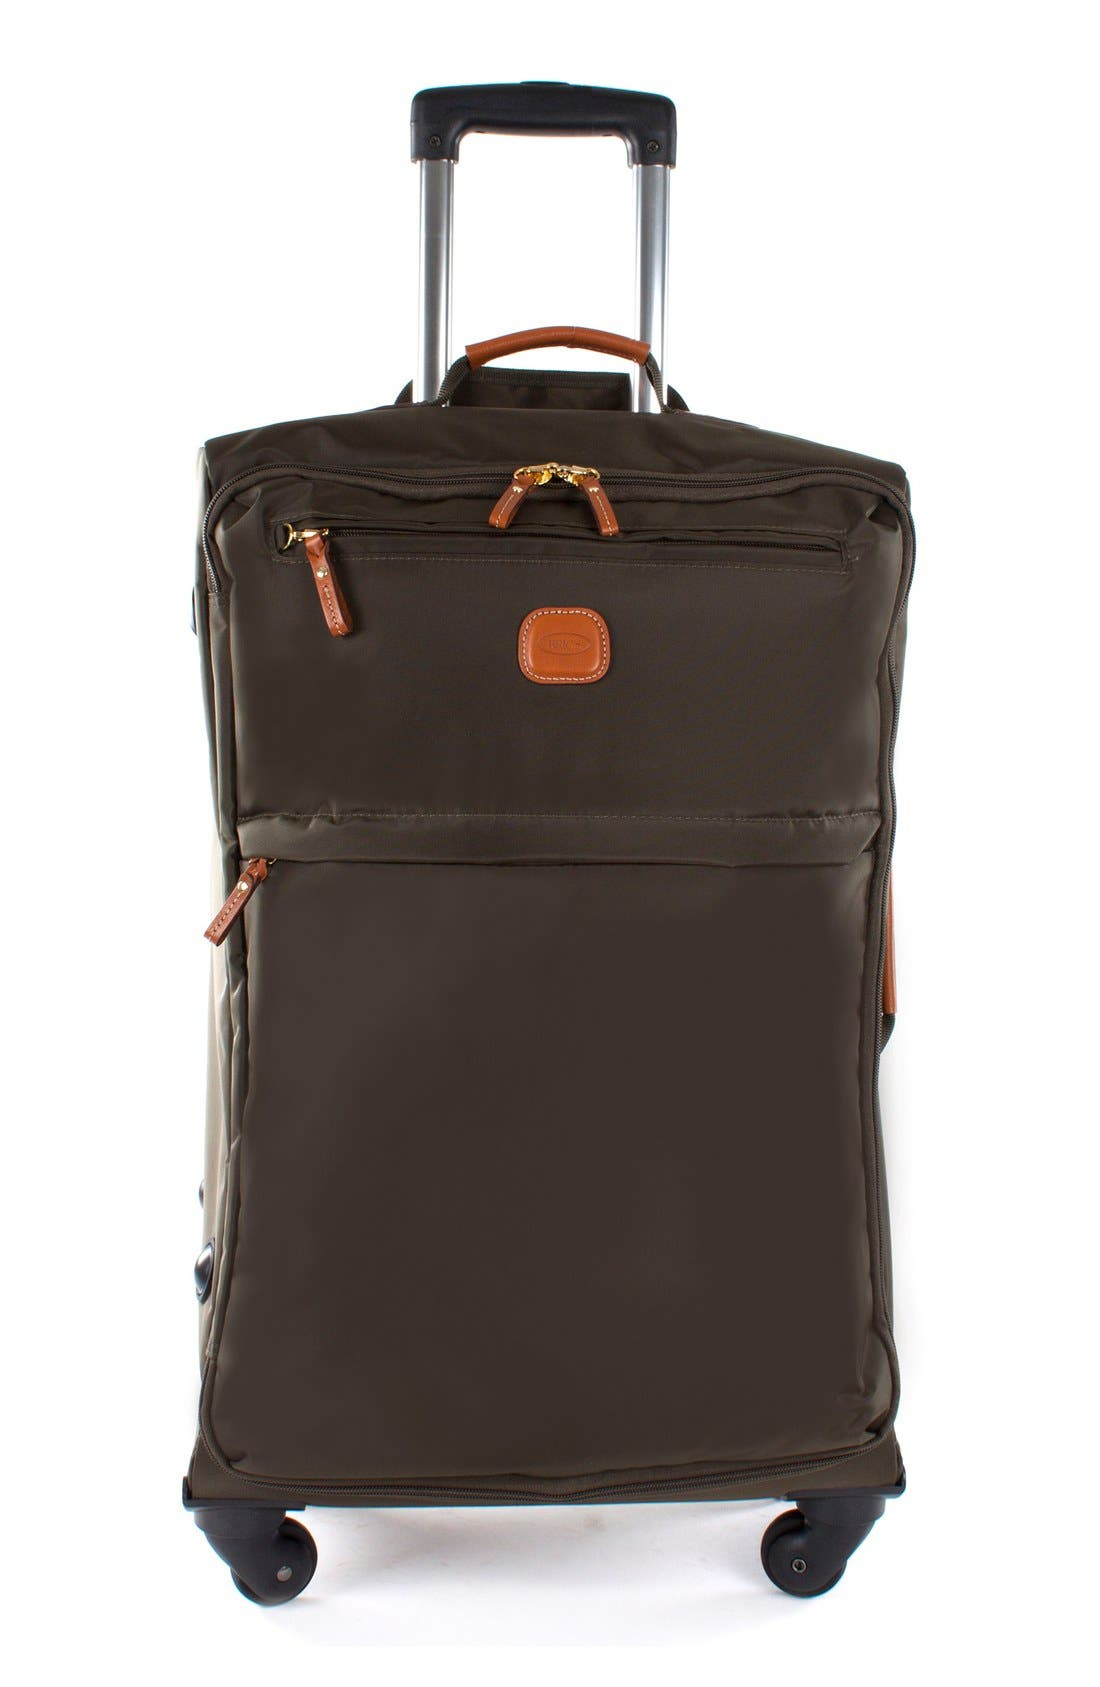 BRIC'S 'X-Bag' Spinner Suitcase